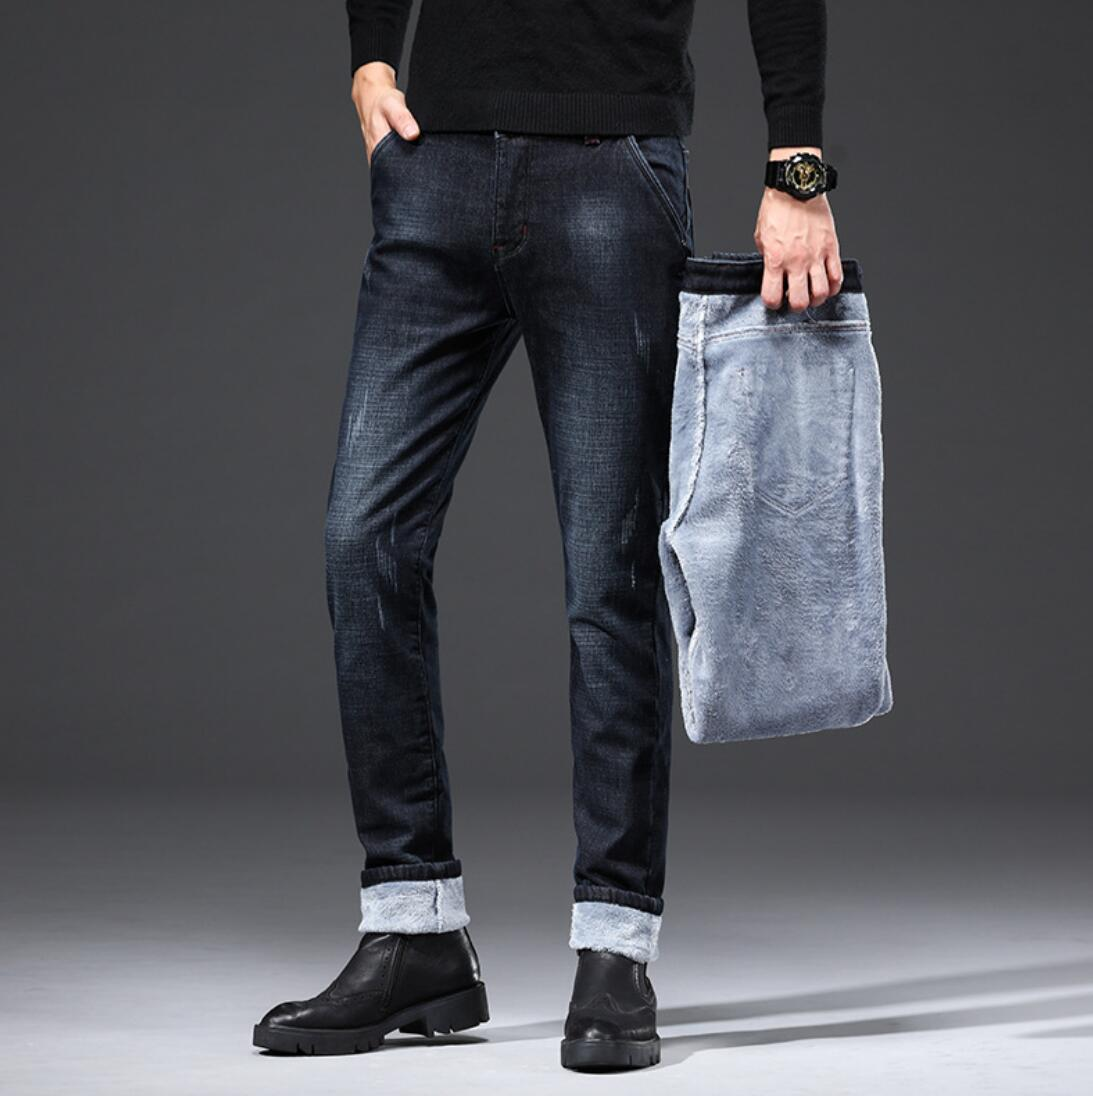 HOT 2020 Autumn Men's Jeans Casual Black Fashion Slim New Straight Stretch Men's Jeans KK7722-1-15